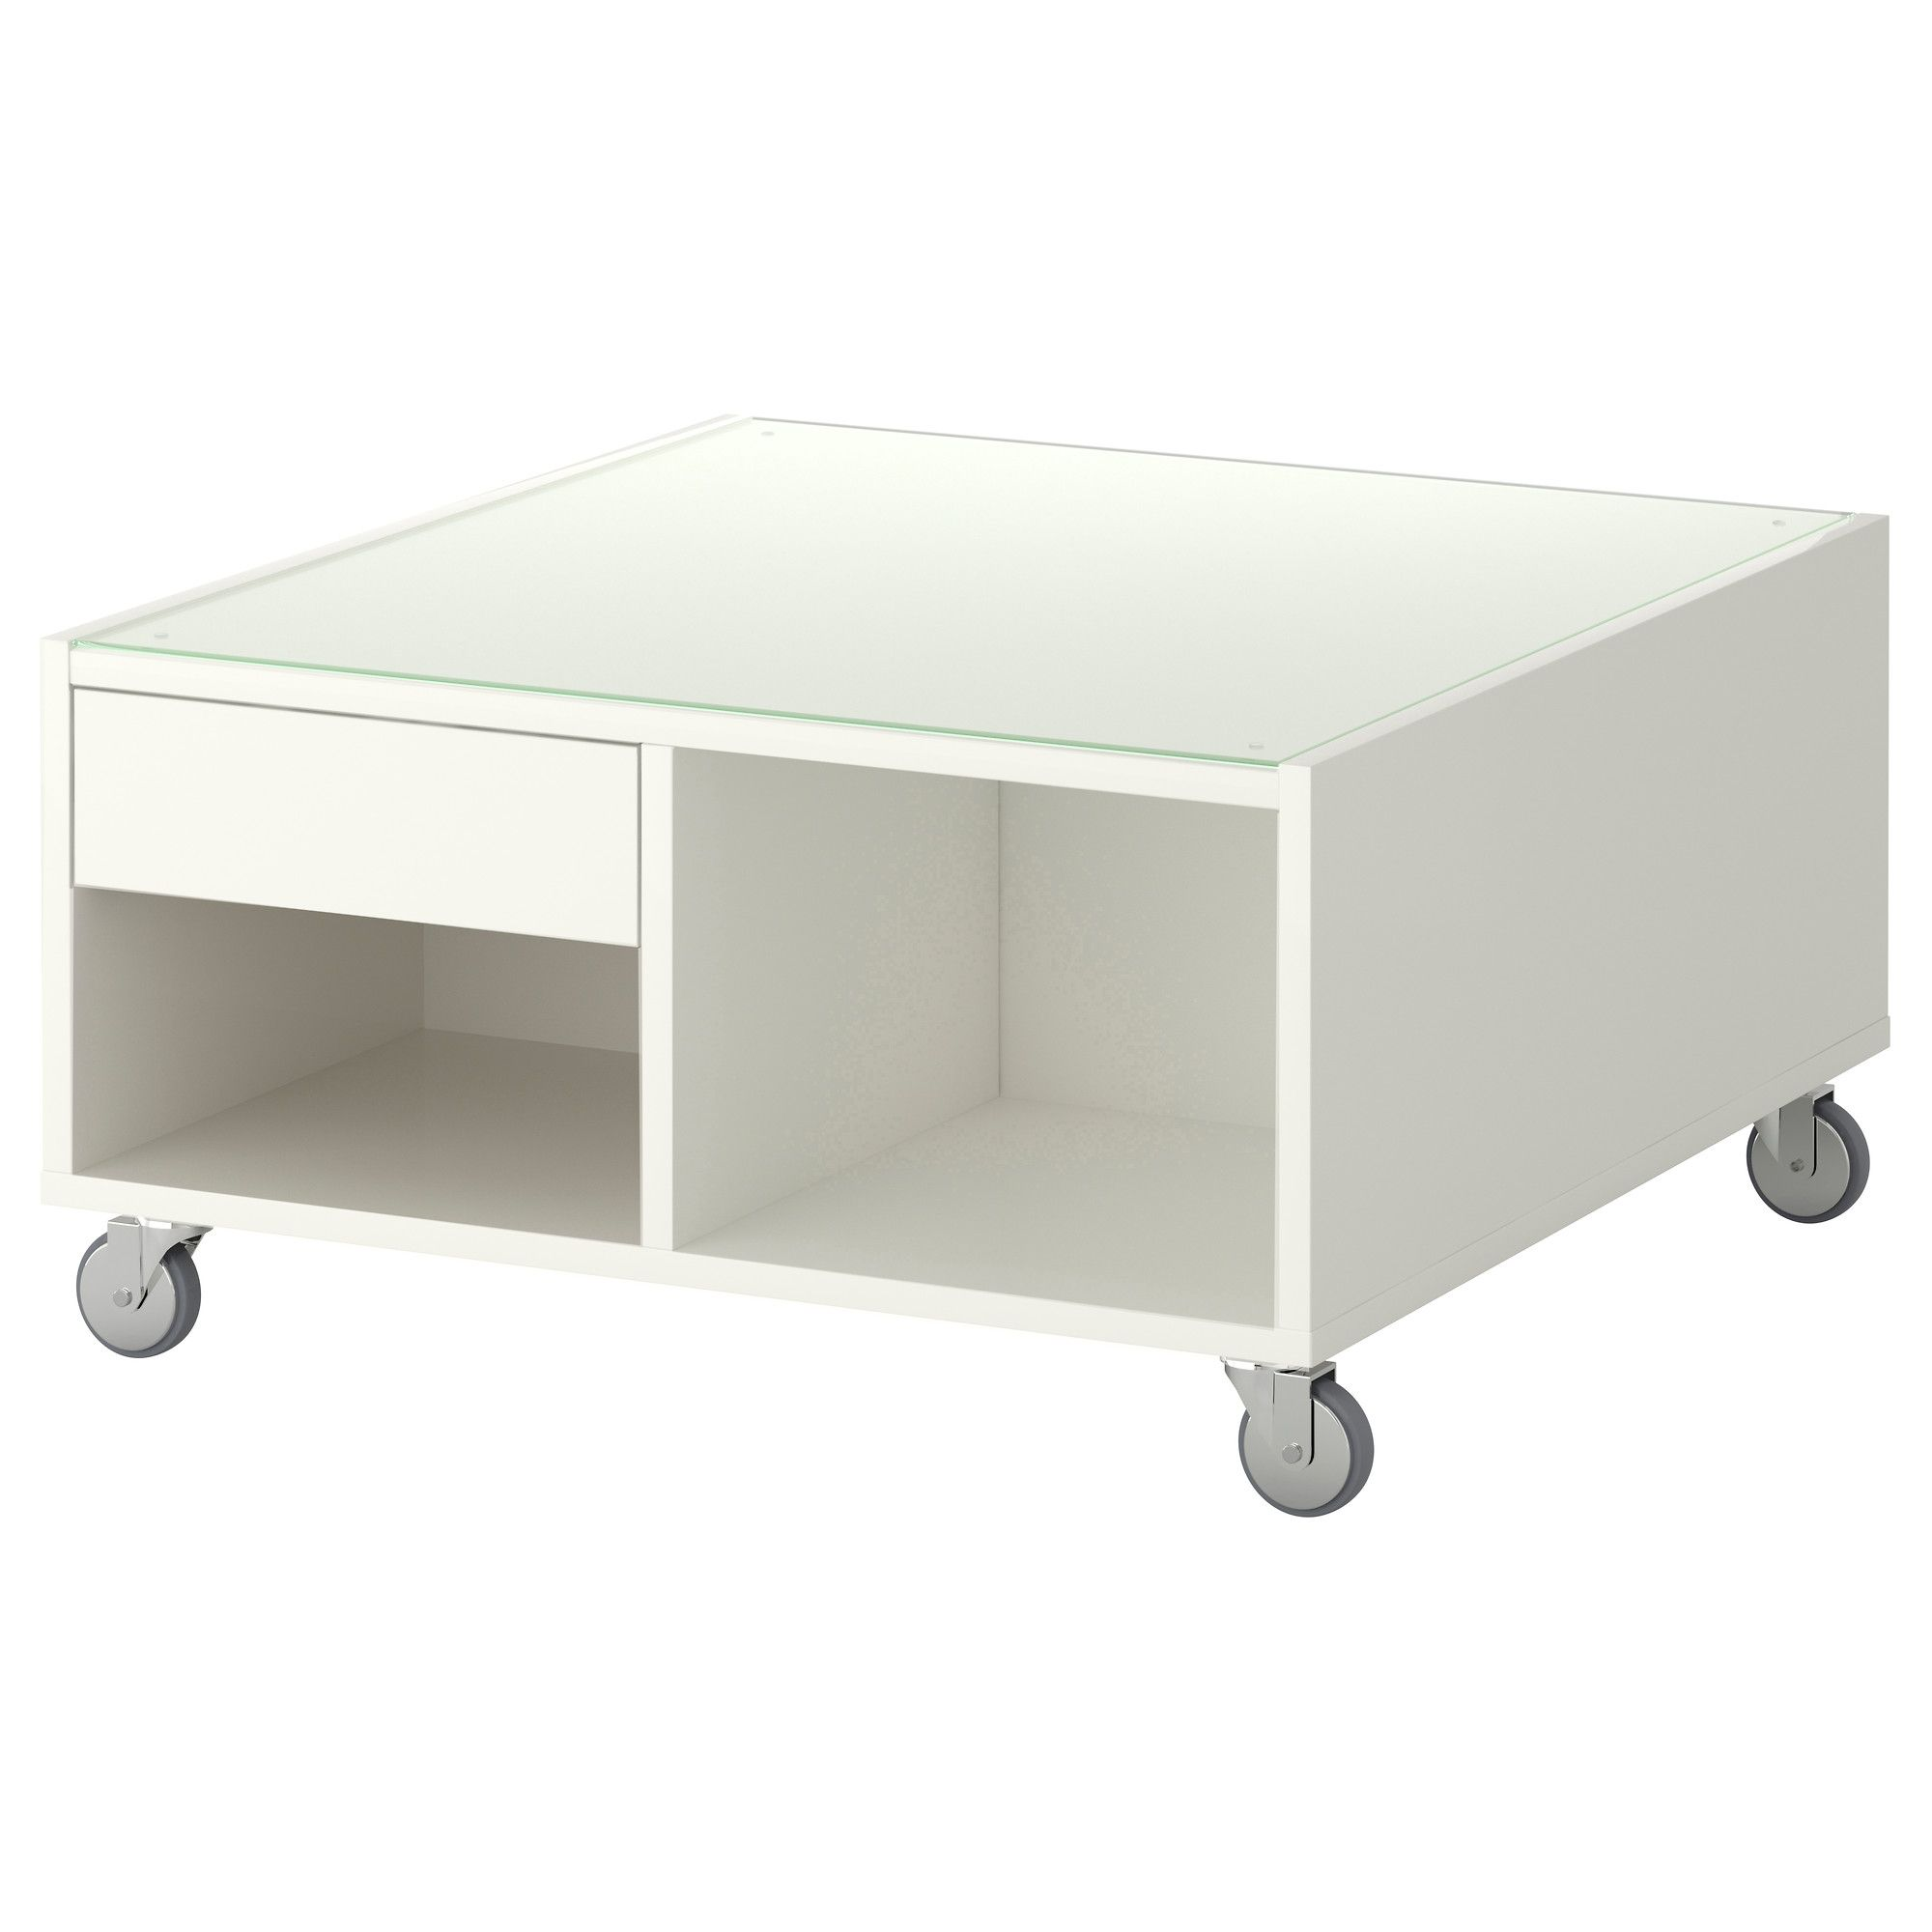 BOKSEL Coffee table white IKEA New House Ideas